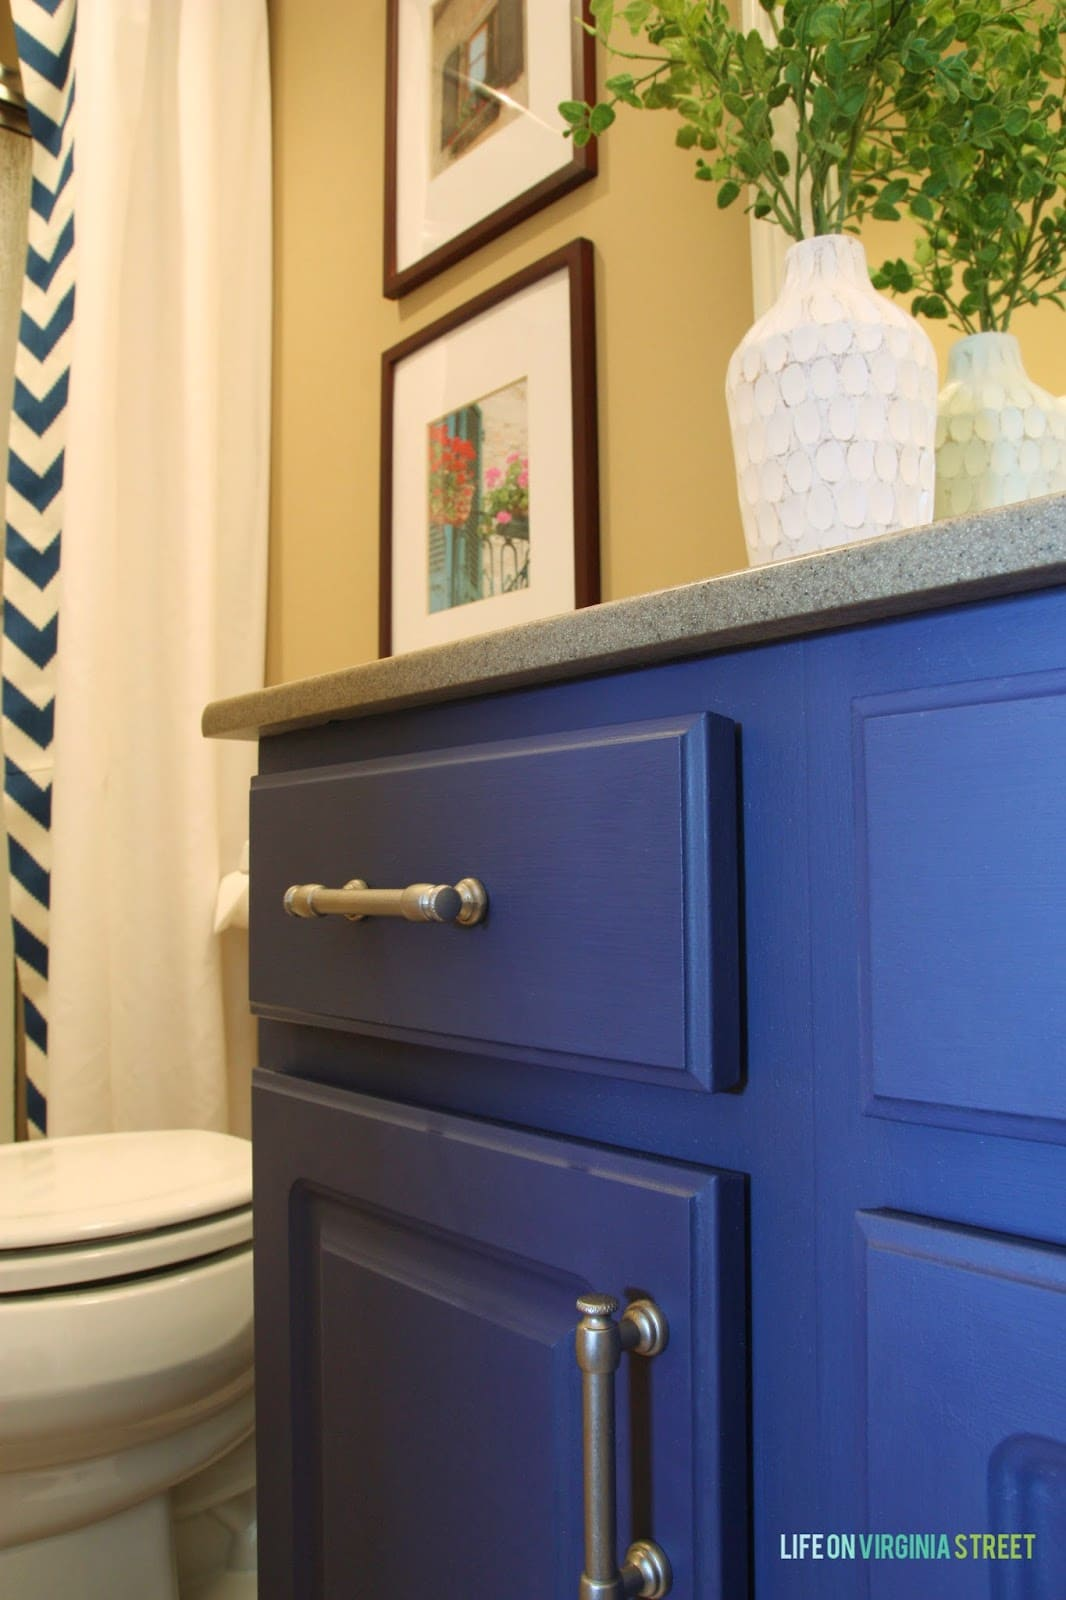 How To Repaint Bathroom Cabinets White bathroom vanity makeover using country chic paint - life on